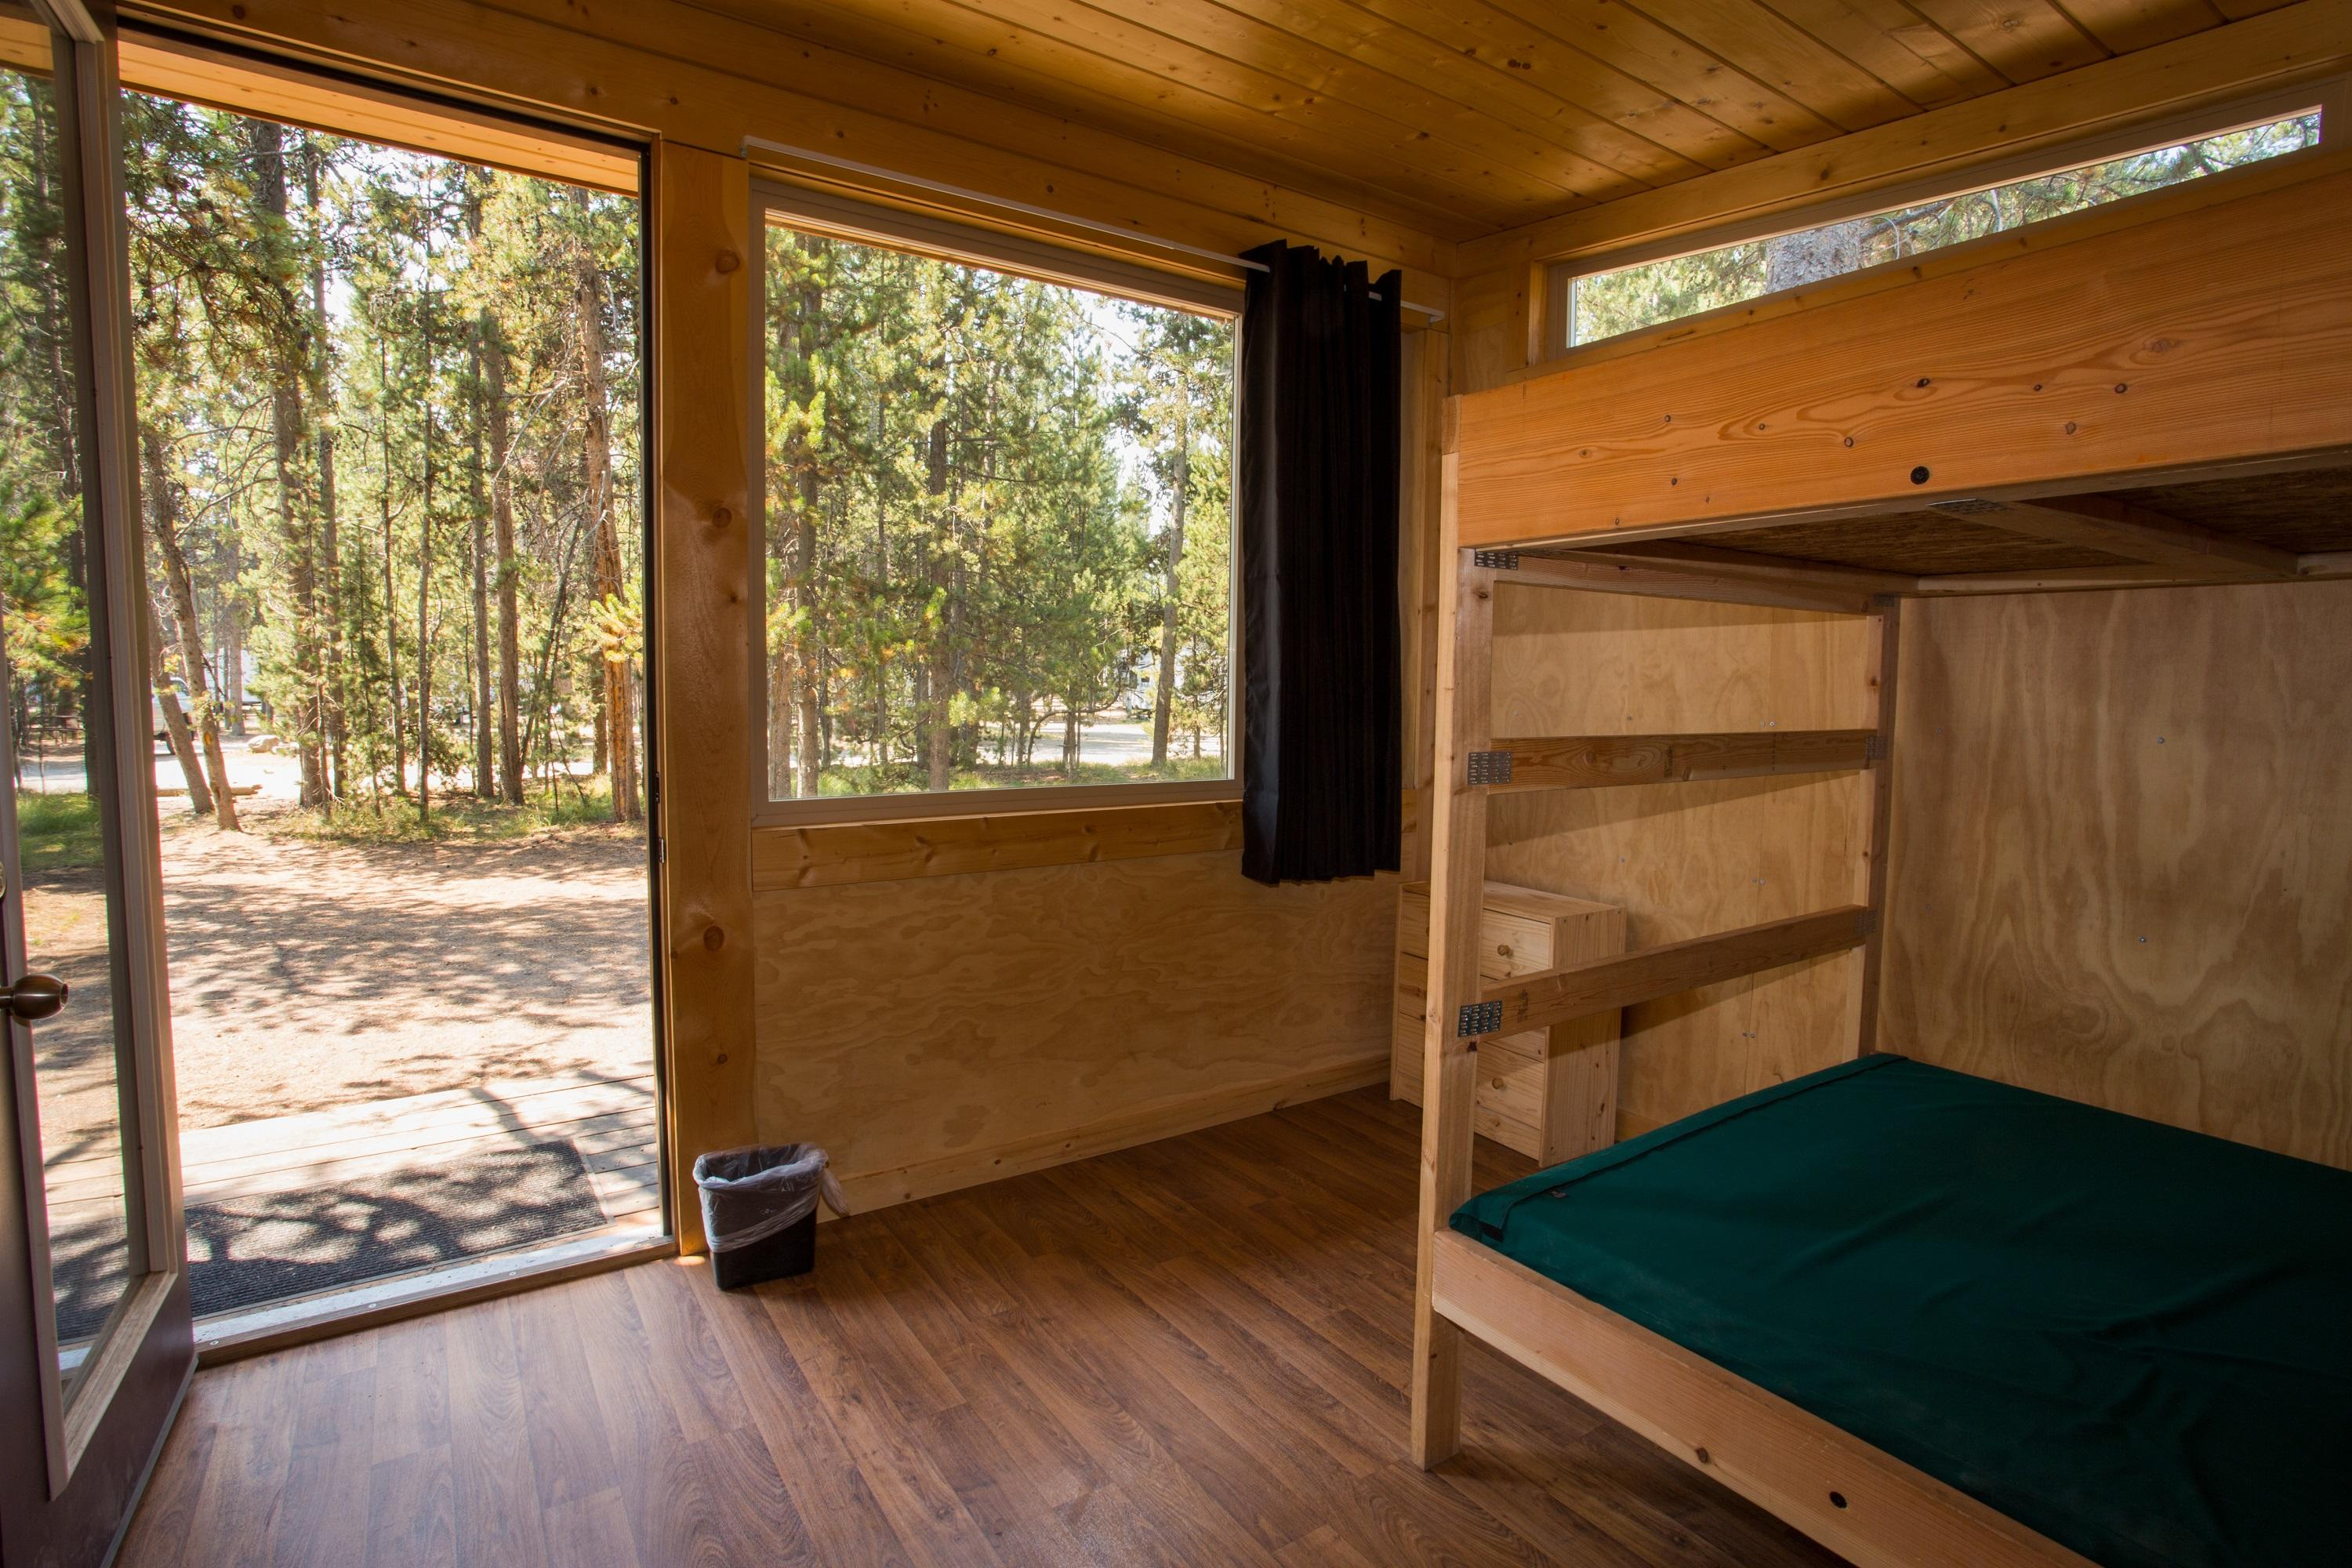 Headwaters lodge cabins at flagg ranch moran wyoming for Headwaters cabins gran teton recensioni